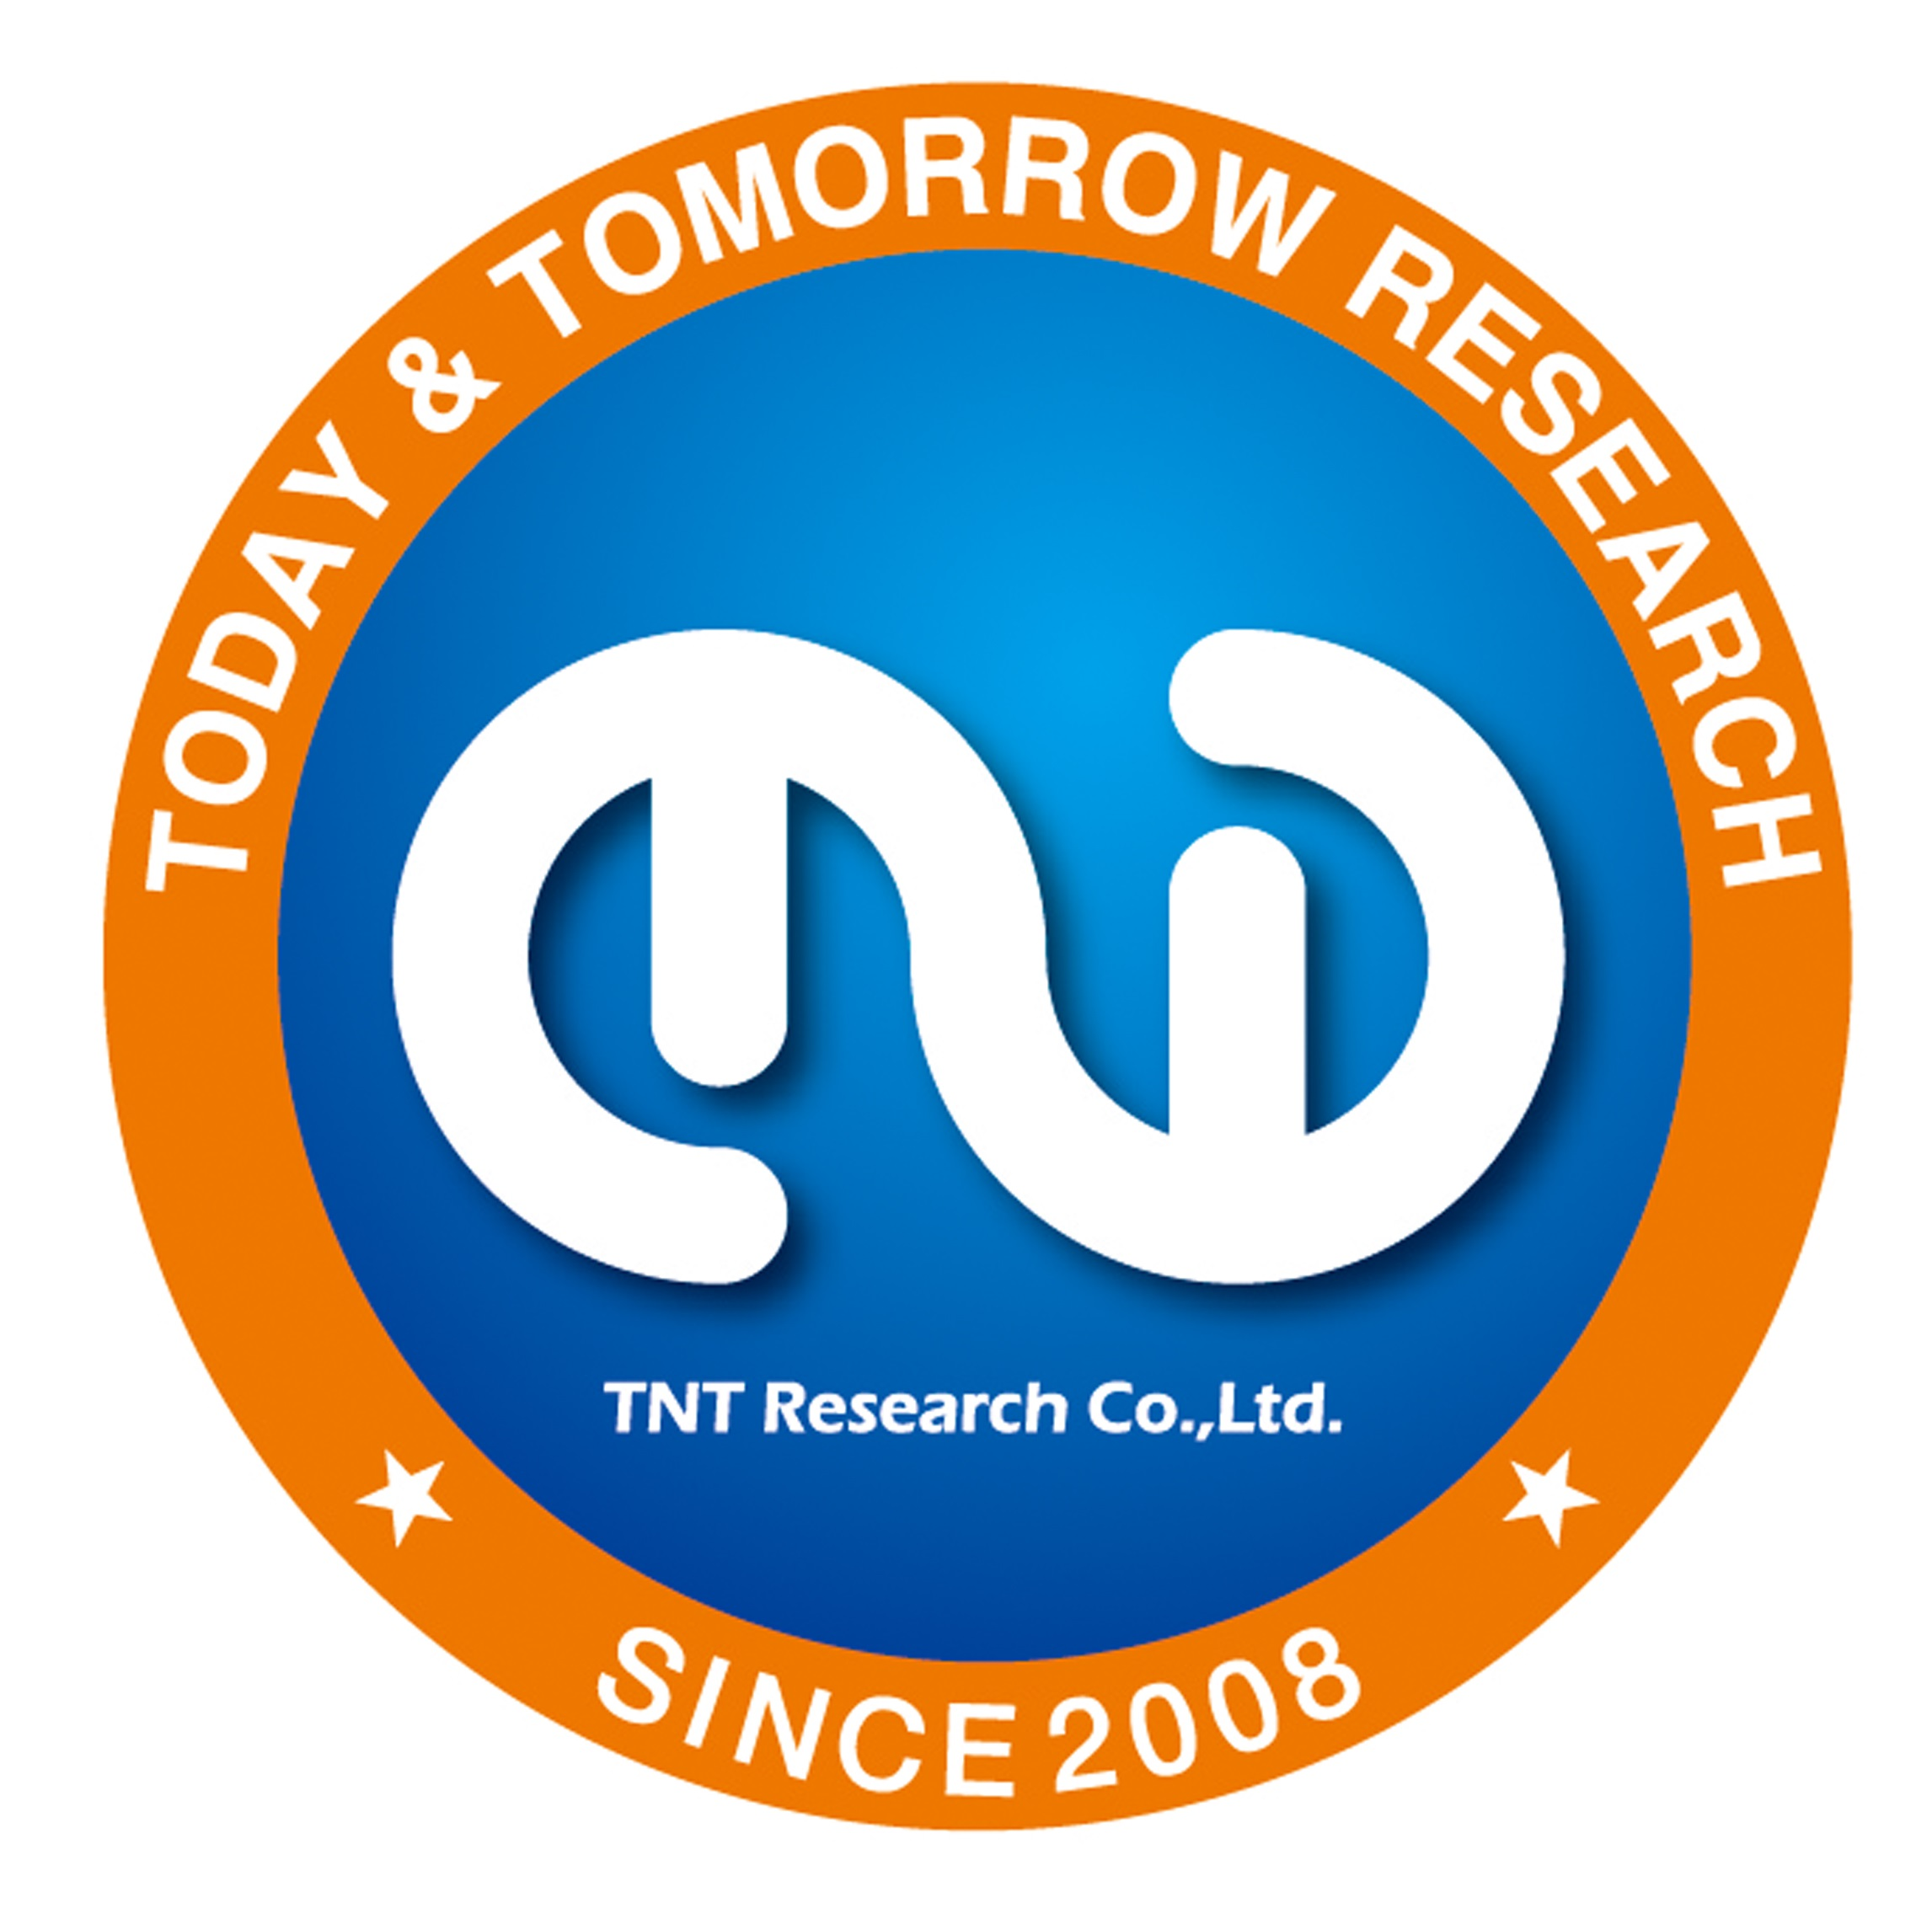 TNT Research